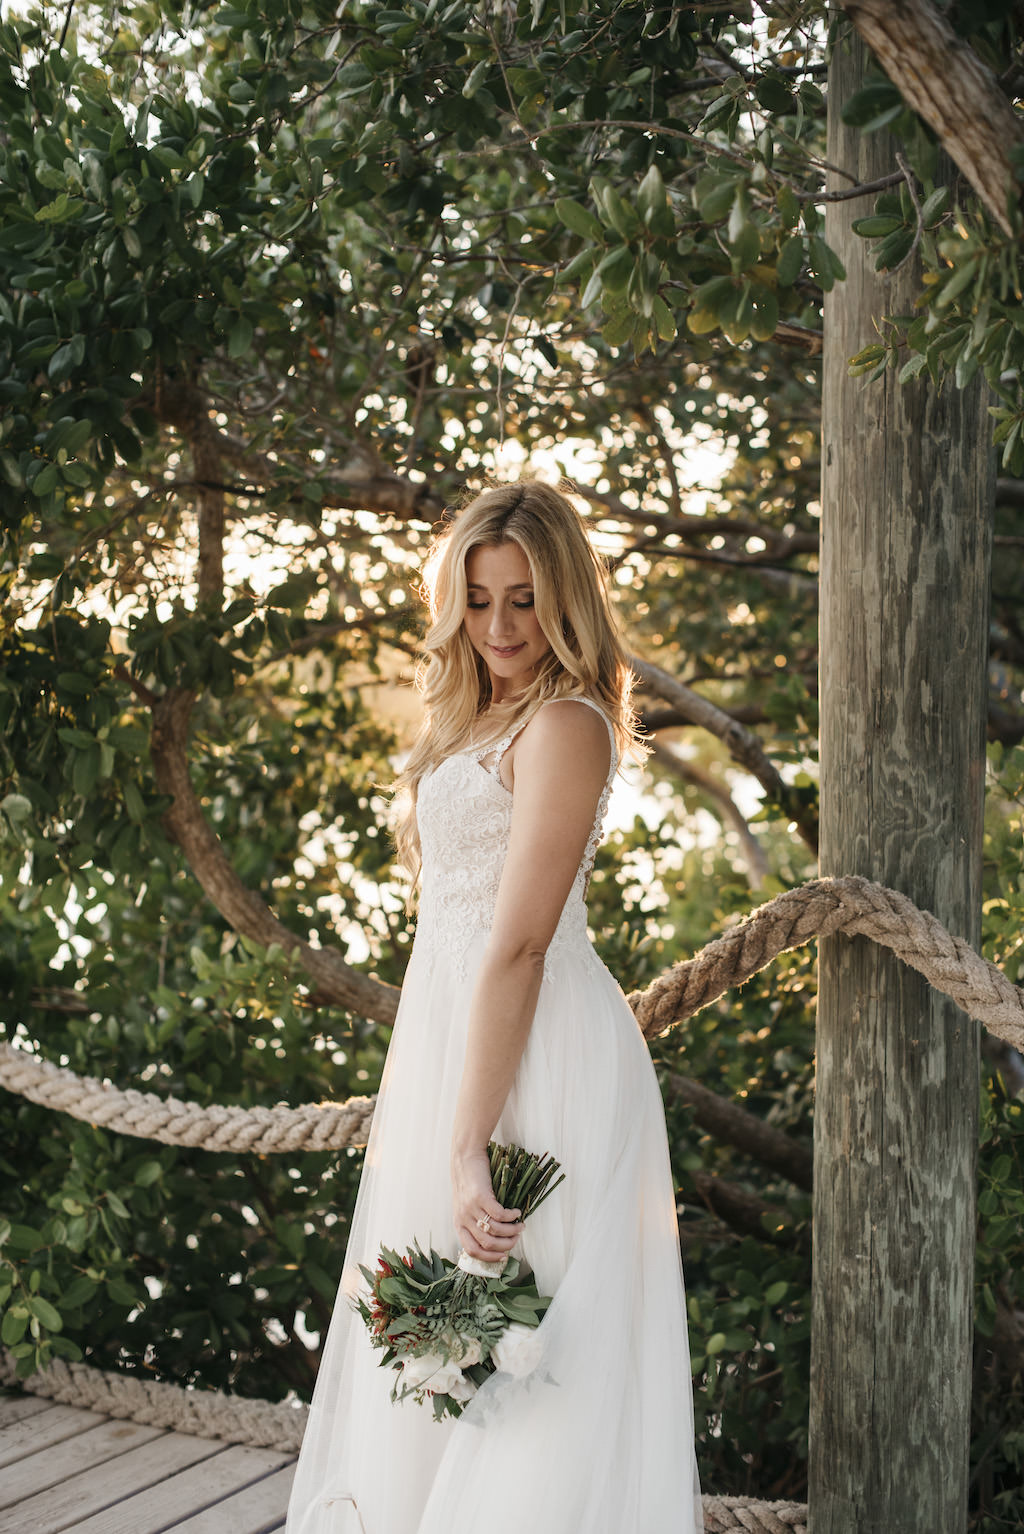 Outdoor Bride Wedding Portrait in A-Line Lace and Straps Wedding Dress with Greenery and Ivory Floral Bouquet | Tampa Bay Wedding Planner Kelly Kennedy Weddings and Events